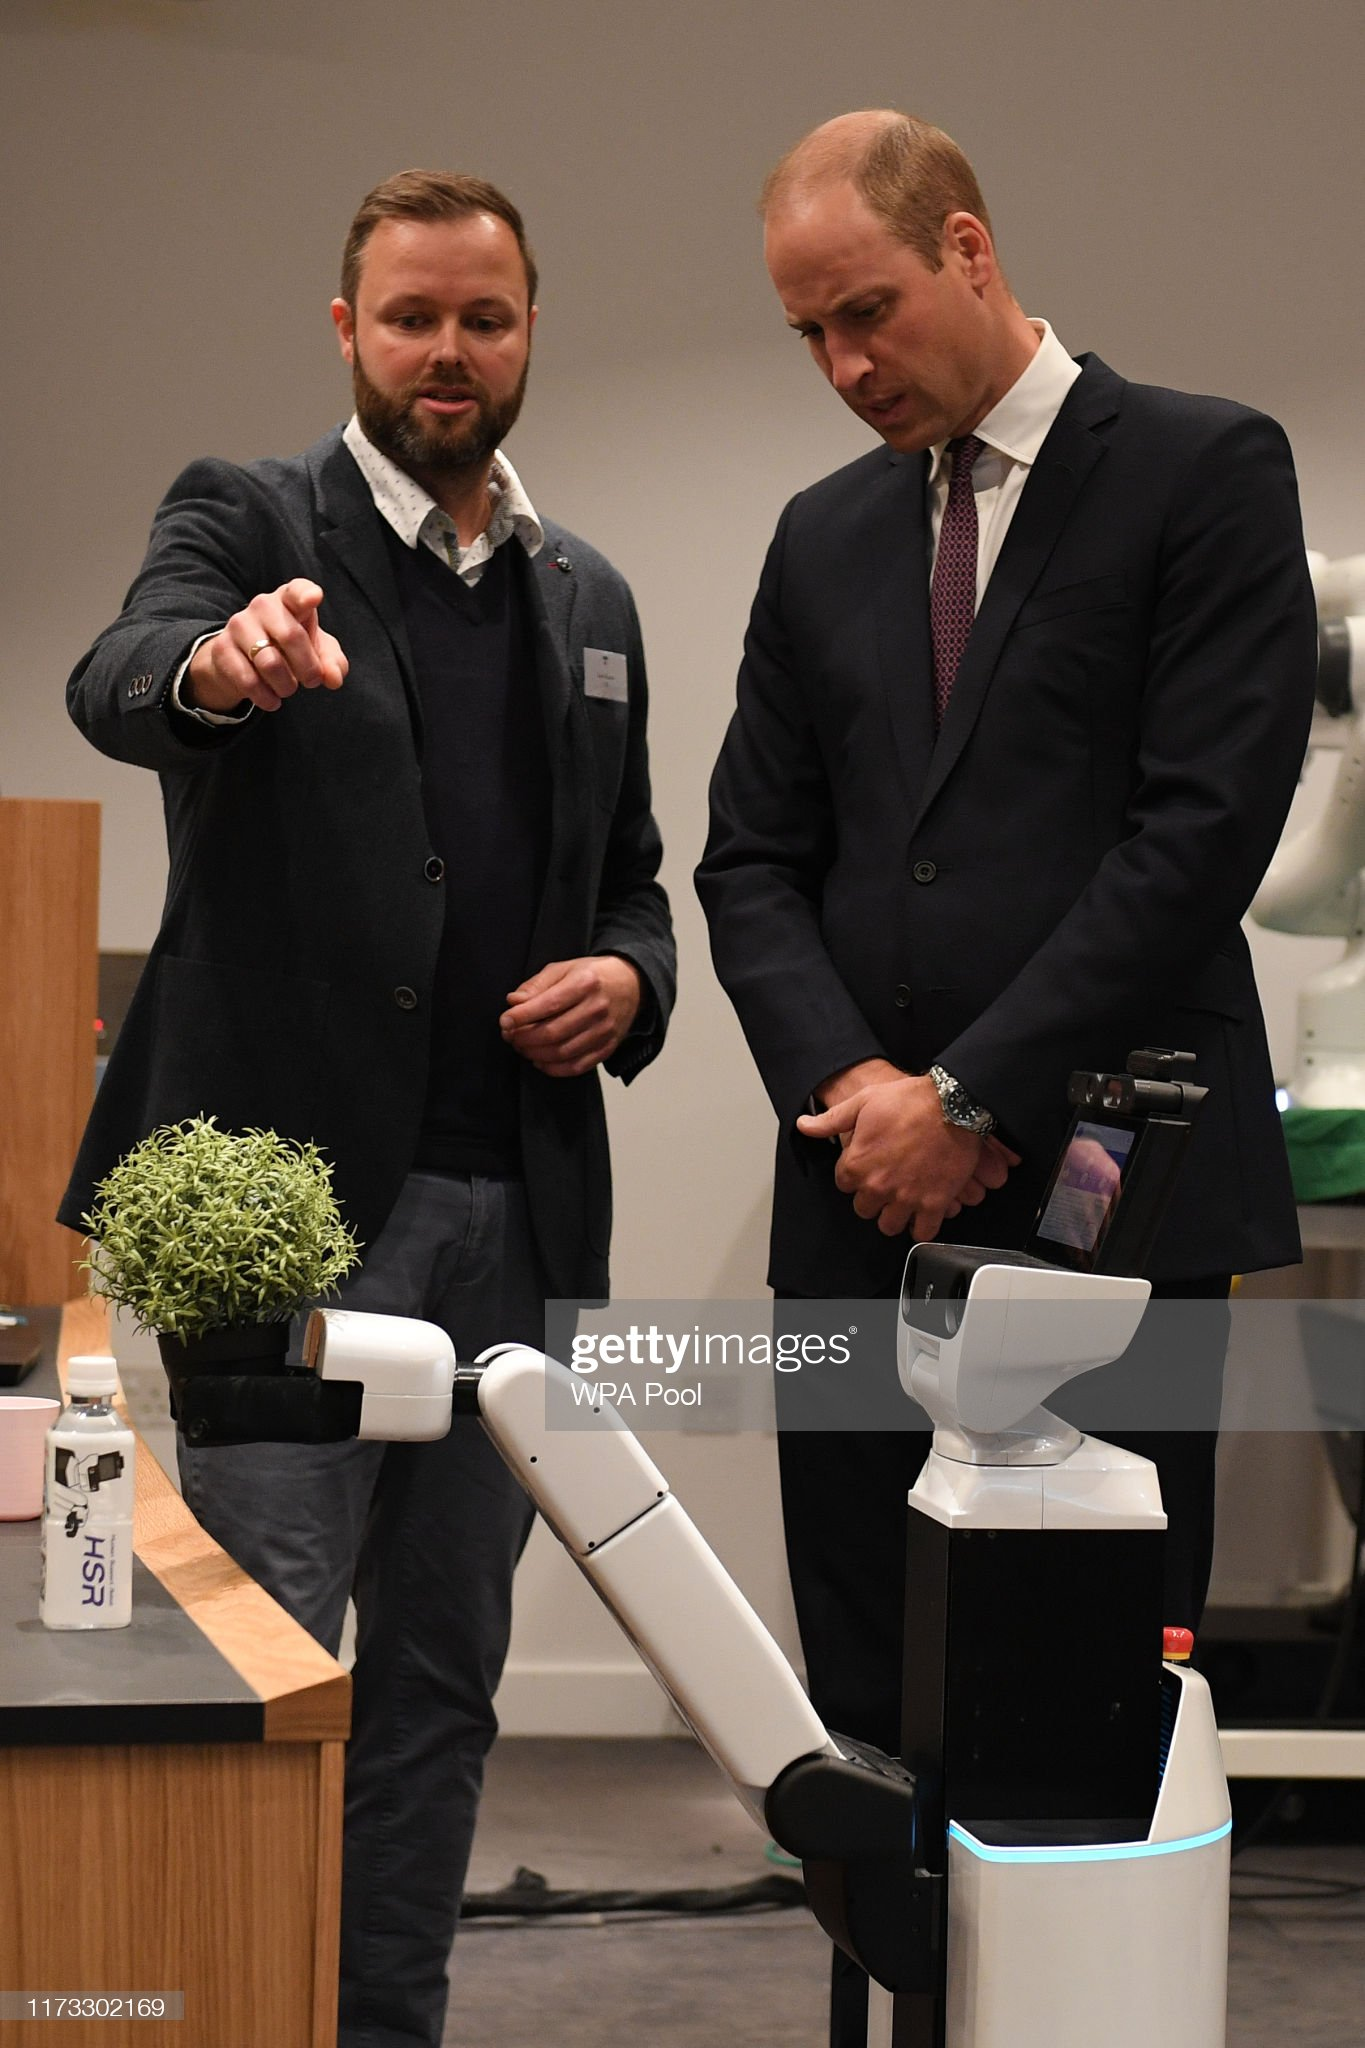 prince-william-duke-of-cambridge-interacts-with-bambam-a-robot-to-picture-id1173302169